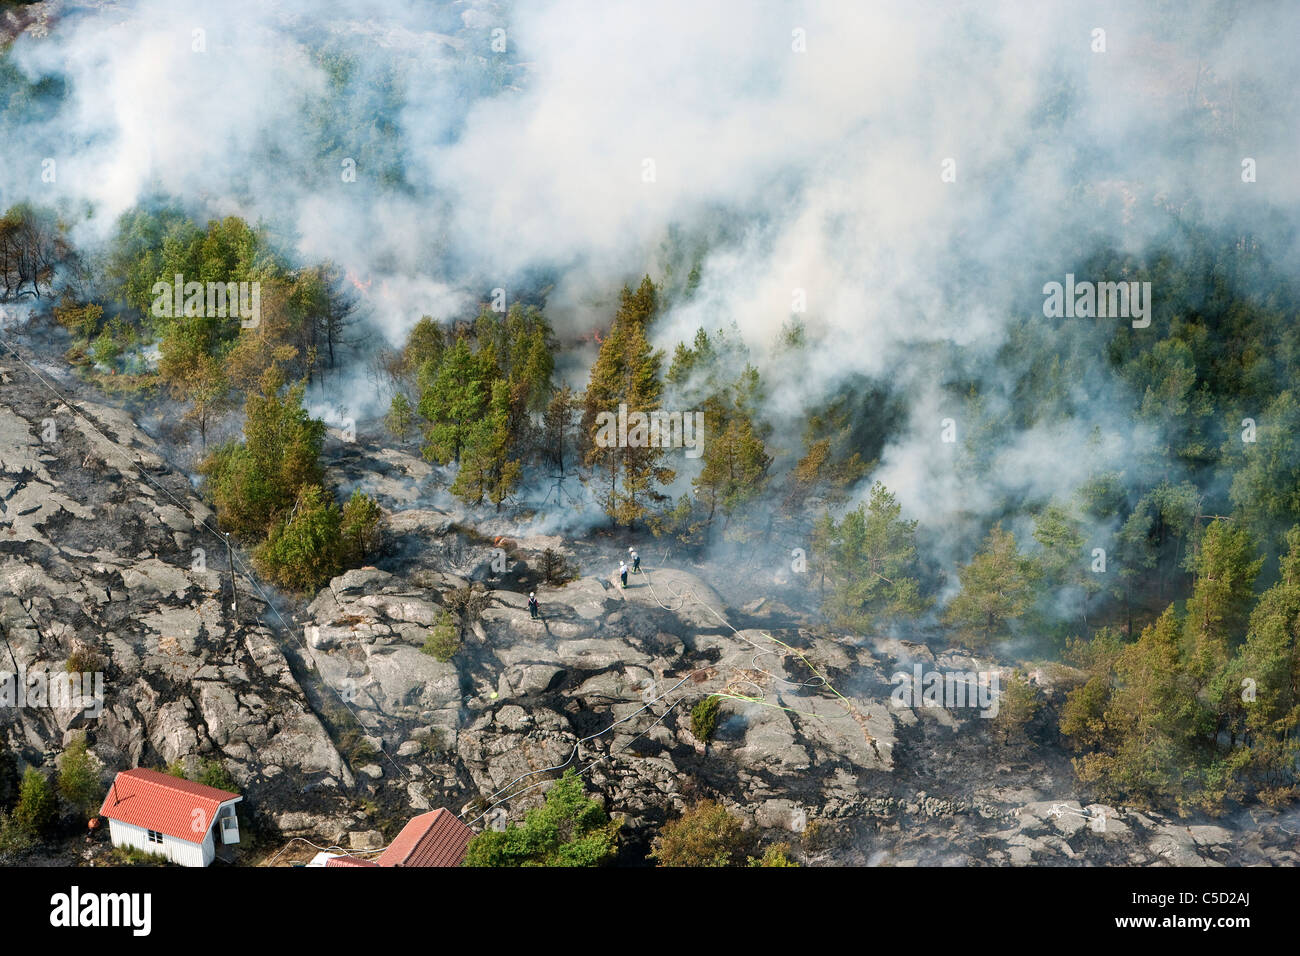 Top view of trees and smoke in forest fire - Stock Image